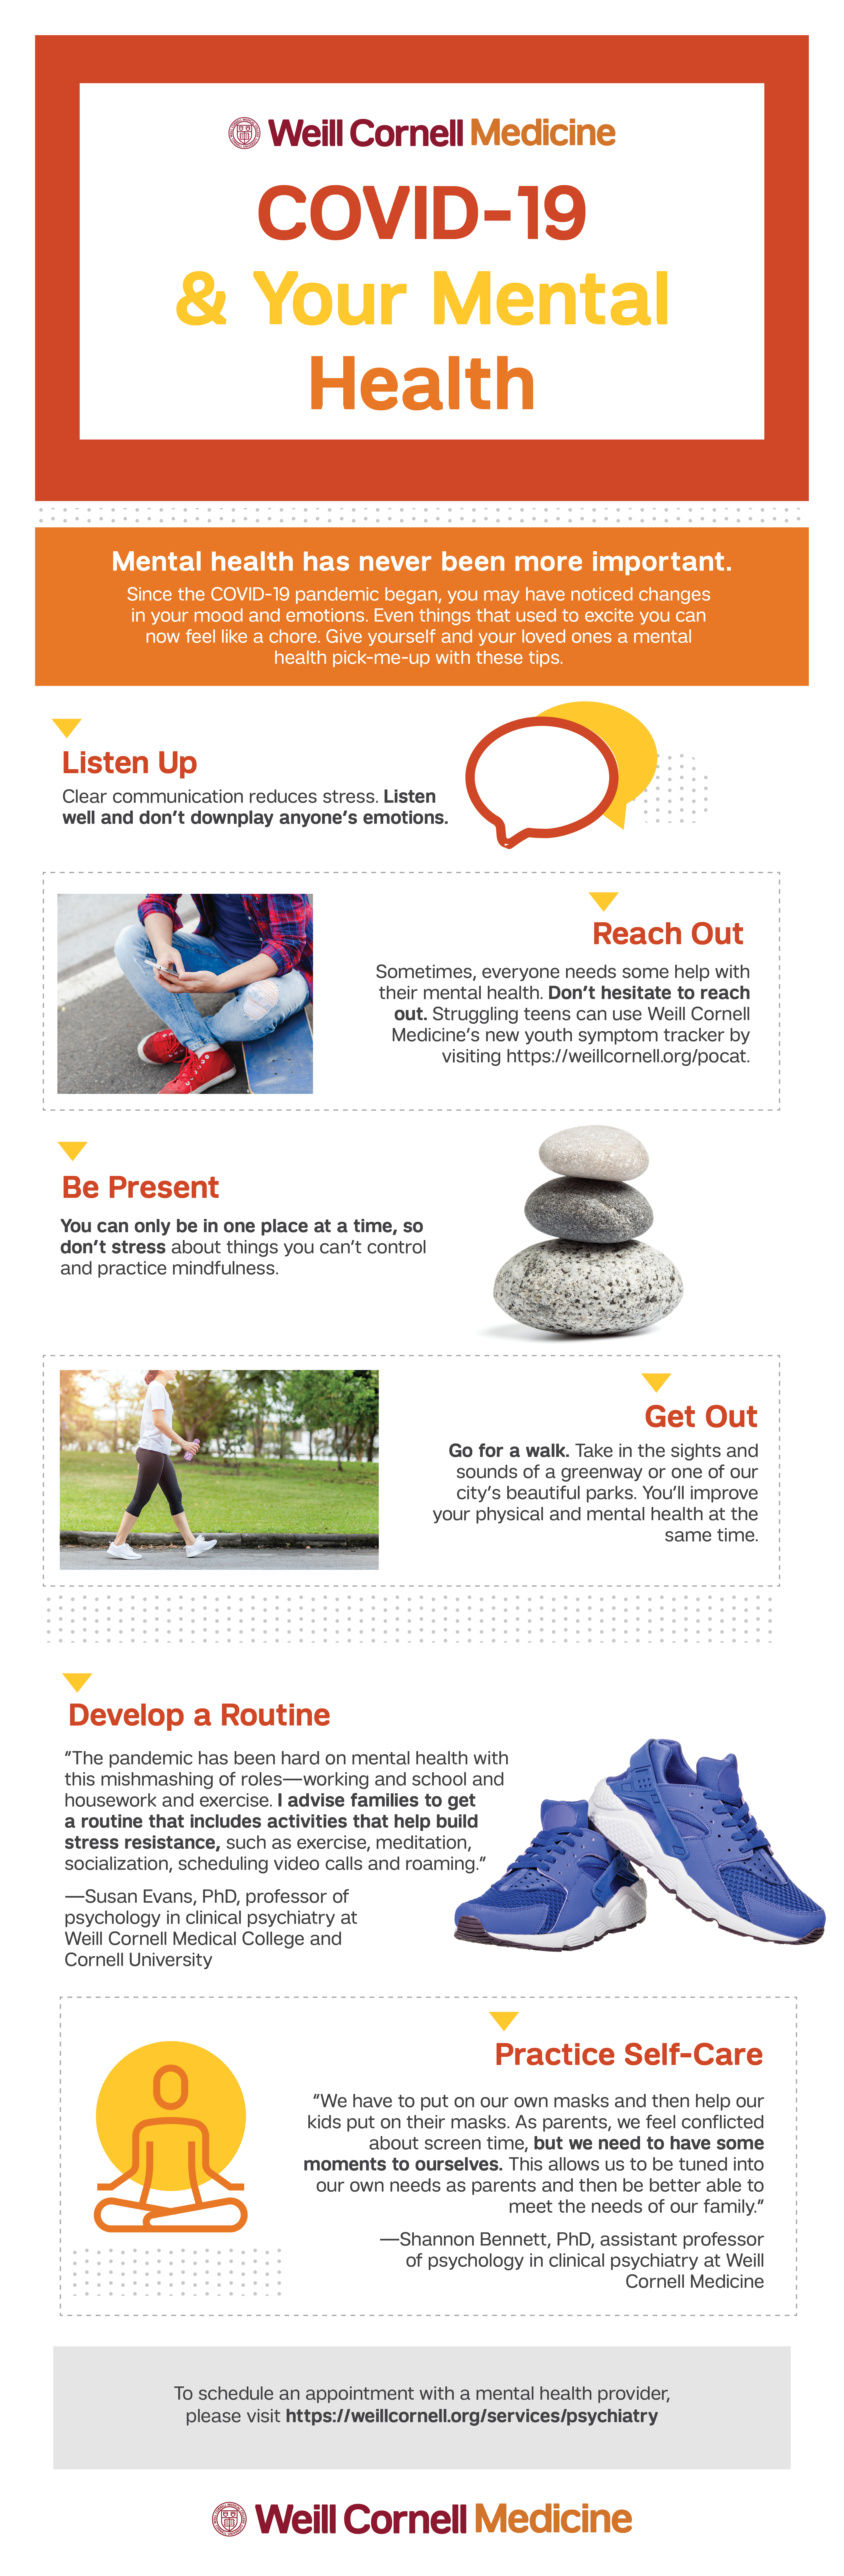 covid-19 and mental health infographic